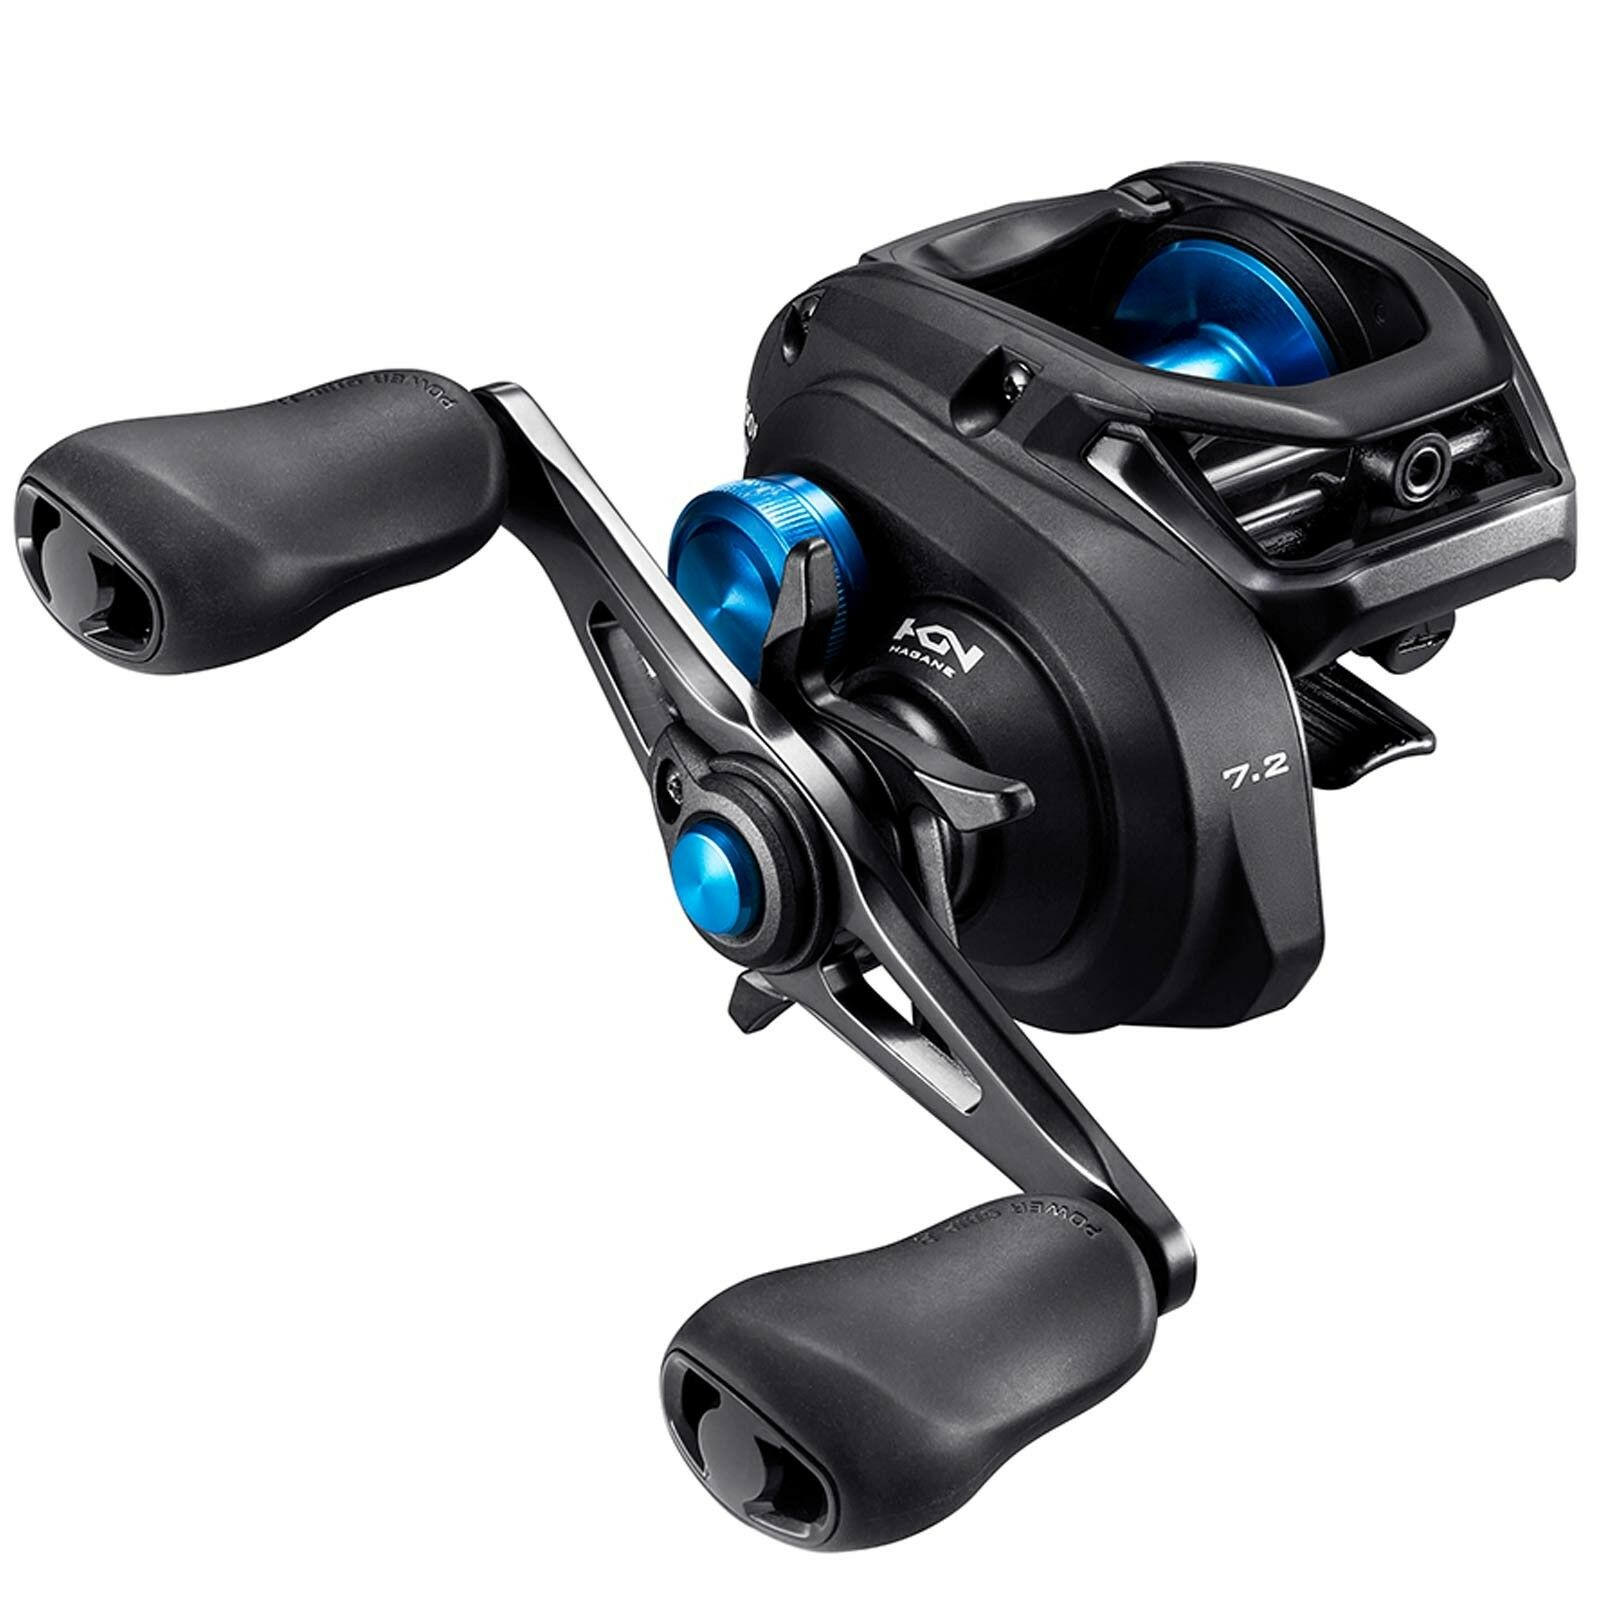 Shimano Baitcastrolle Angelrolle Angelrolle Angelrolle - SLX 151 HG LH 3c829e